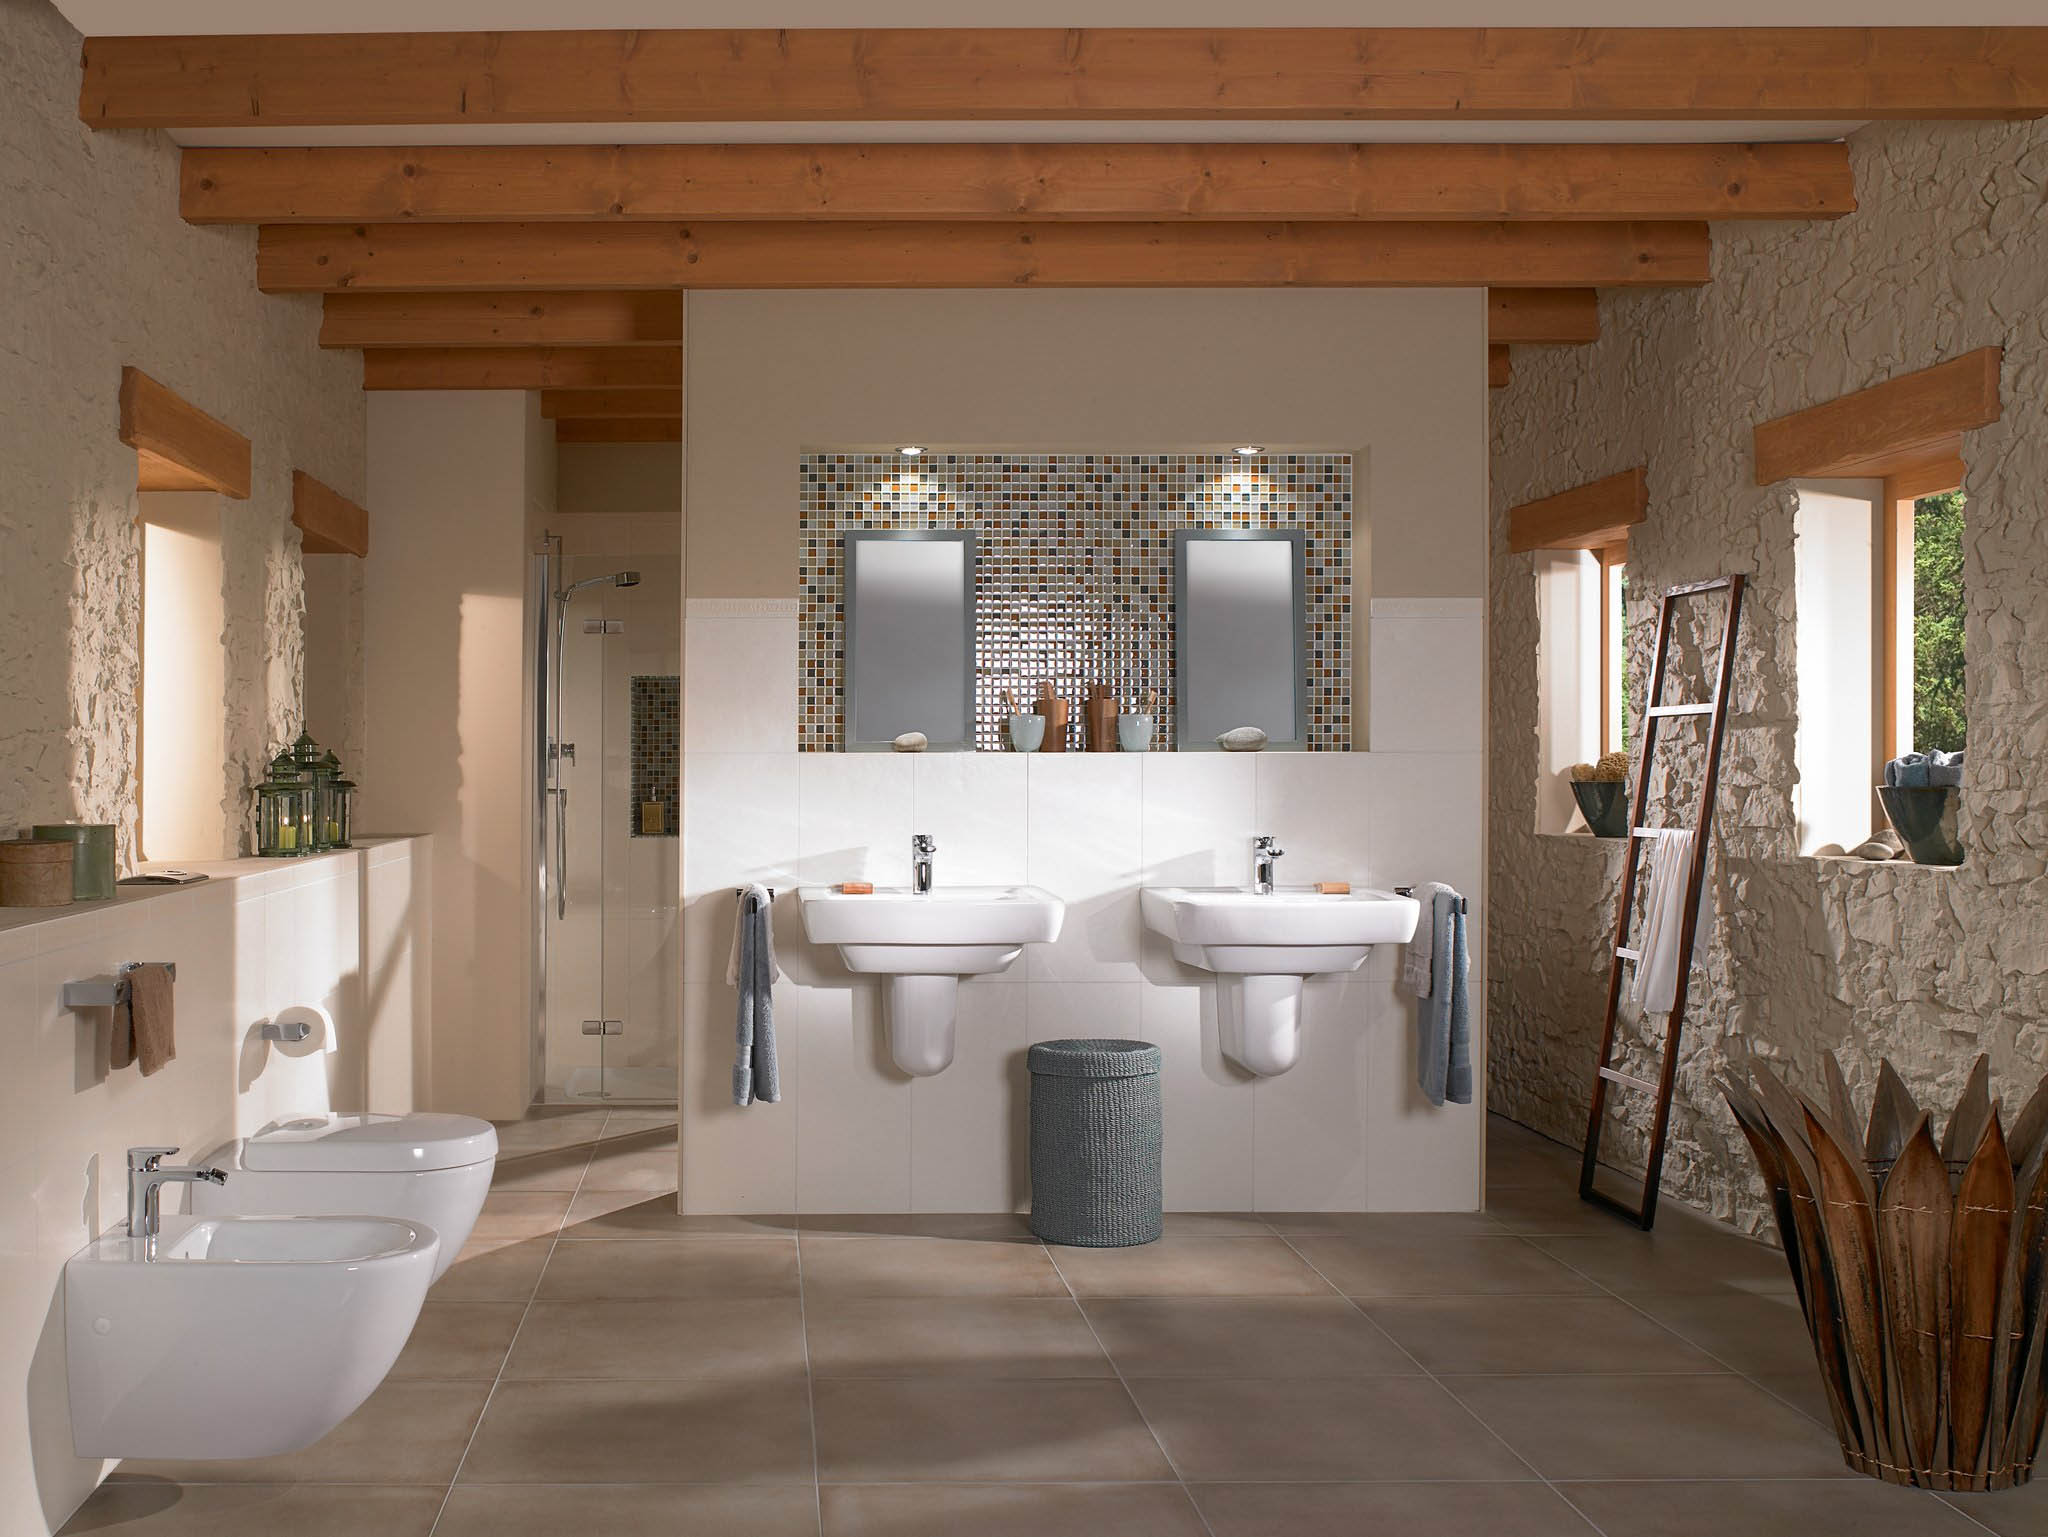 Rustic master bathroom with wall mounted toilet and bidet with matching double sinks